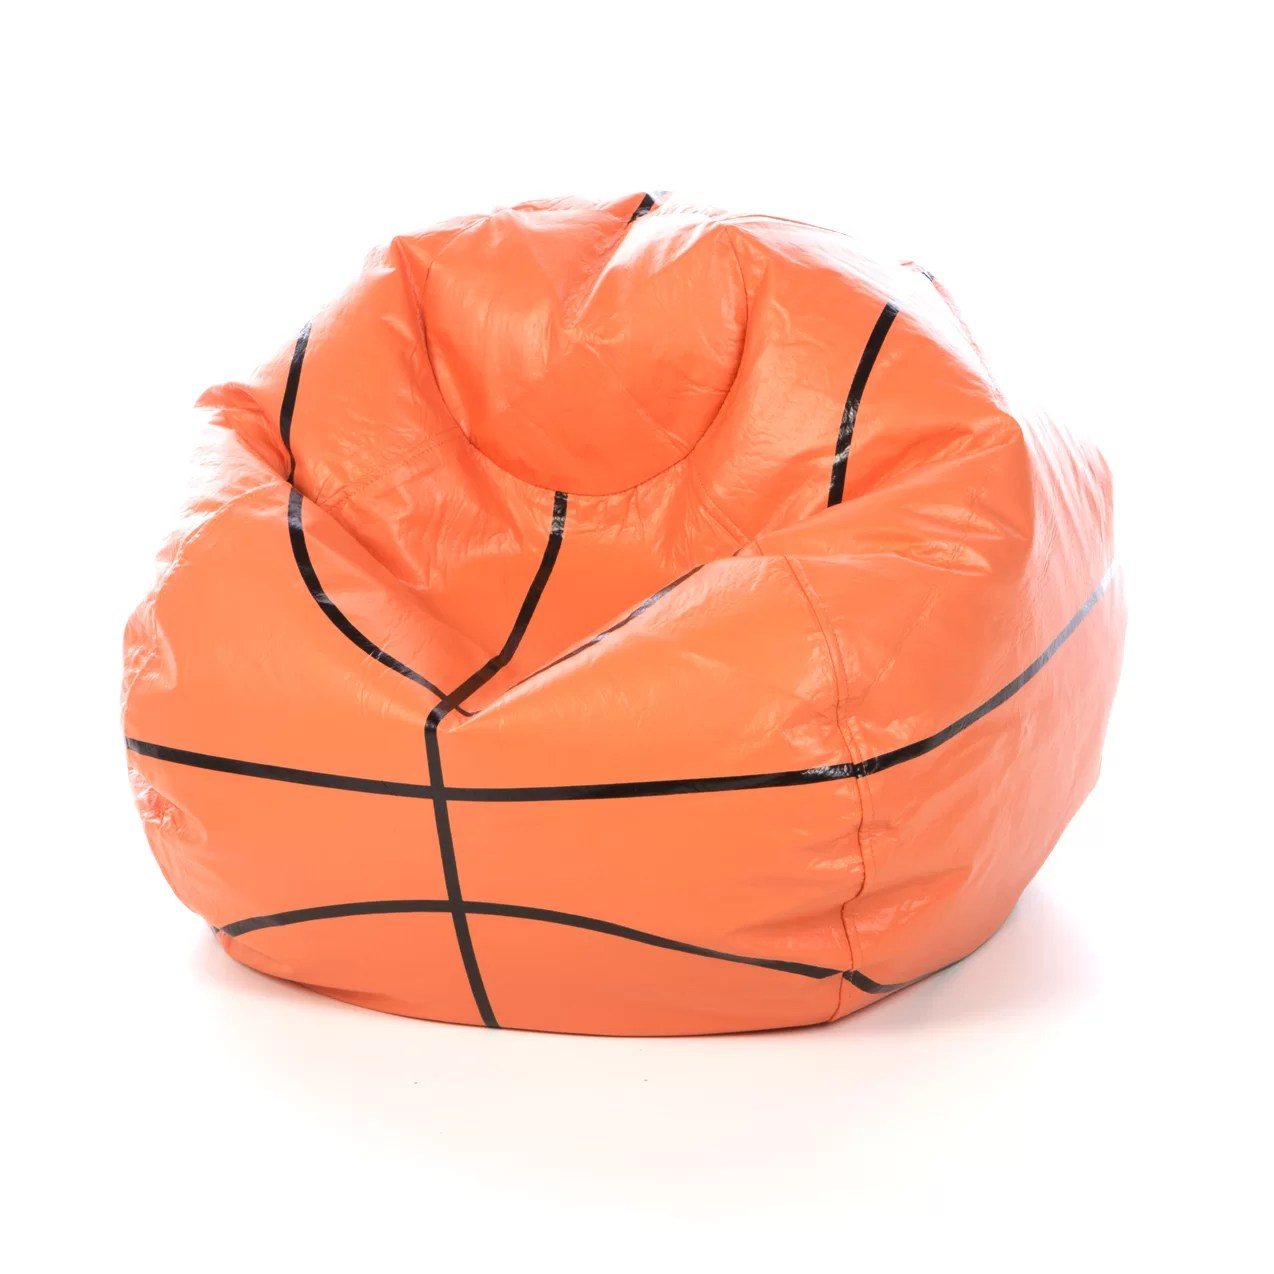 Viv  Rae Kierra Basketball Bean Bag Chair  Reviews  Wayfair